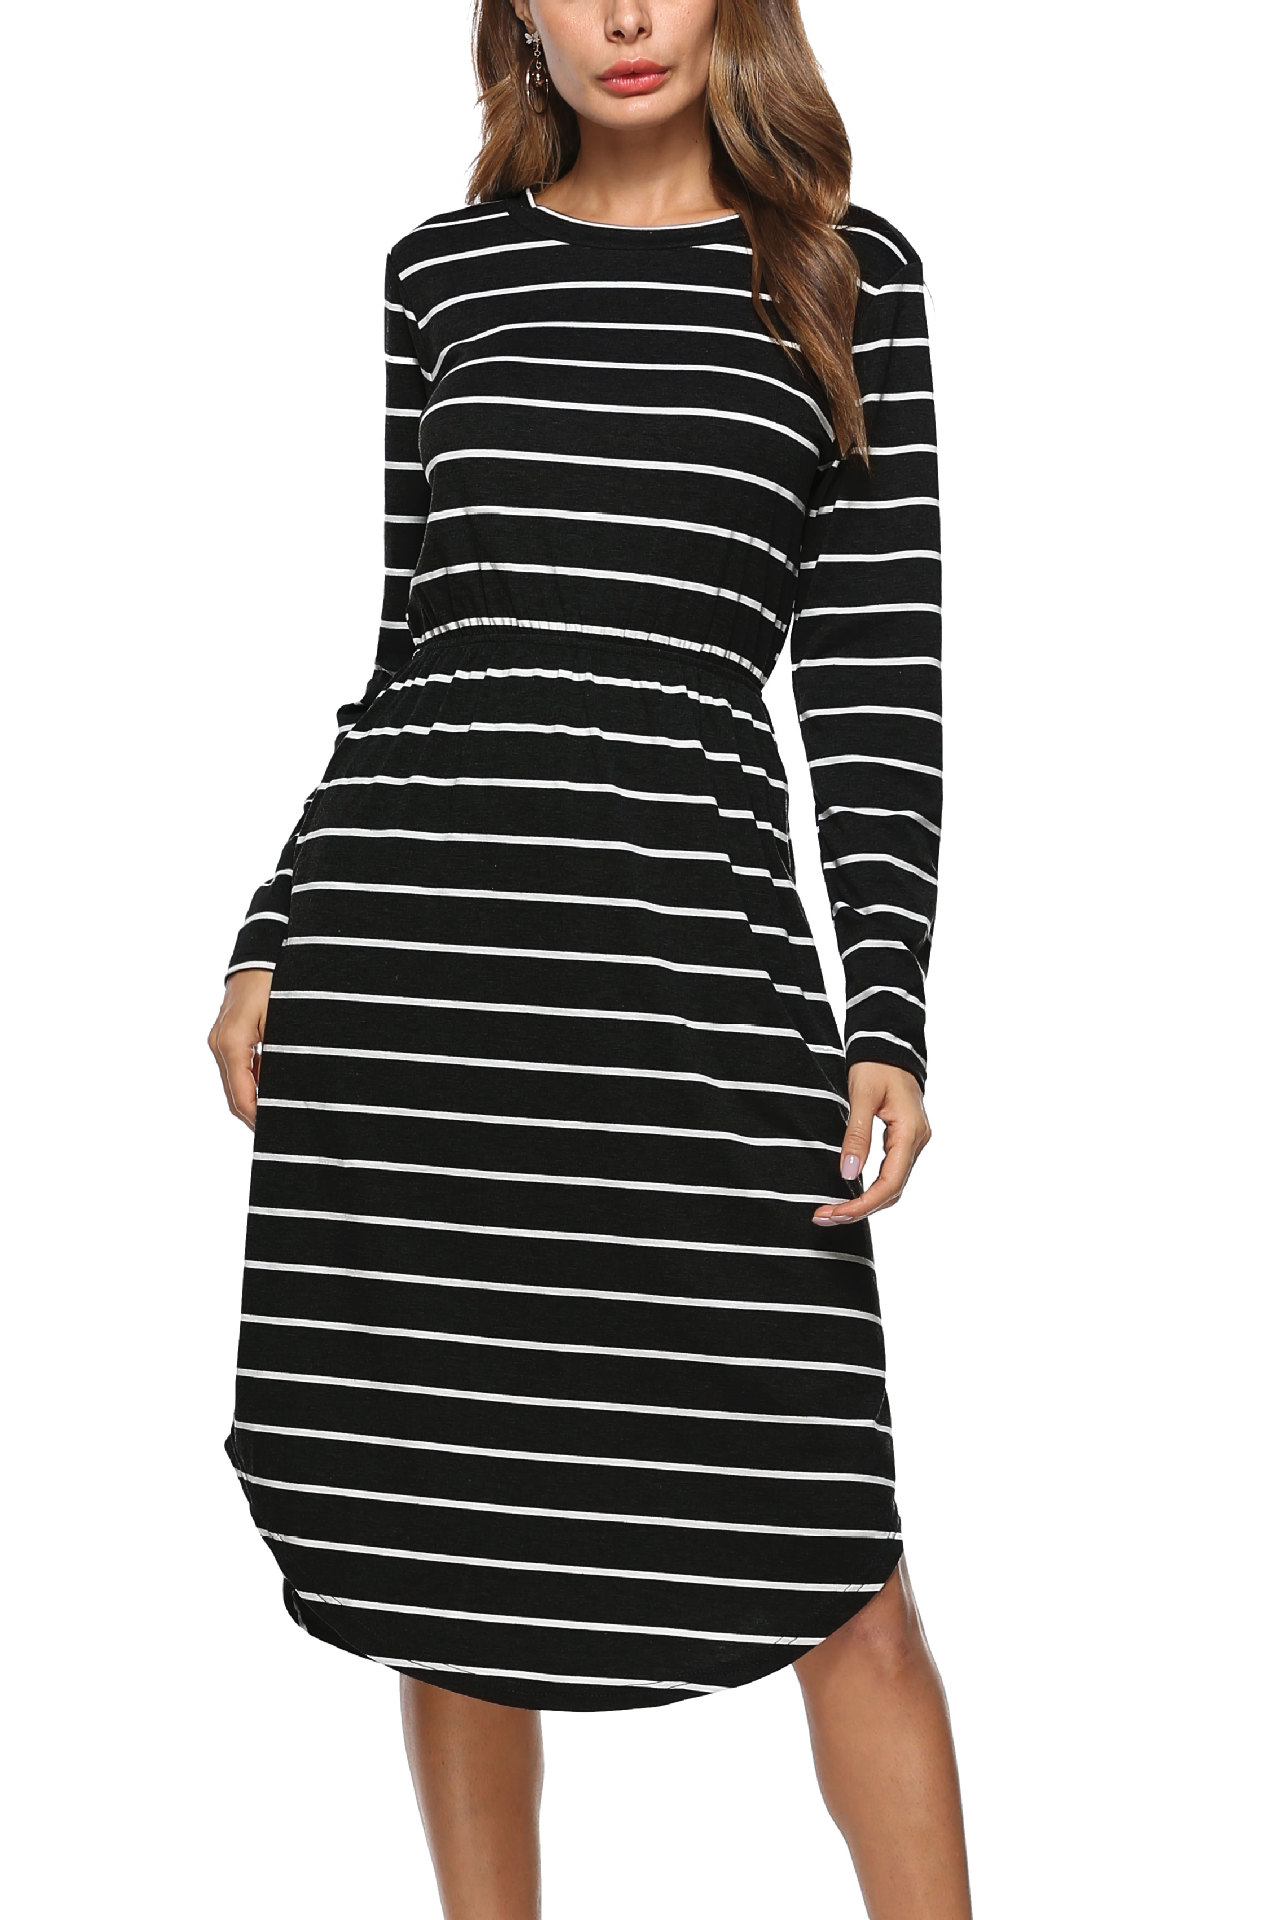 SZ60013-1 Casual Round Neck Long Sleeves Striped Pocket Midi Dress